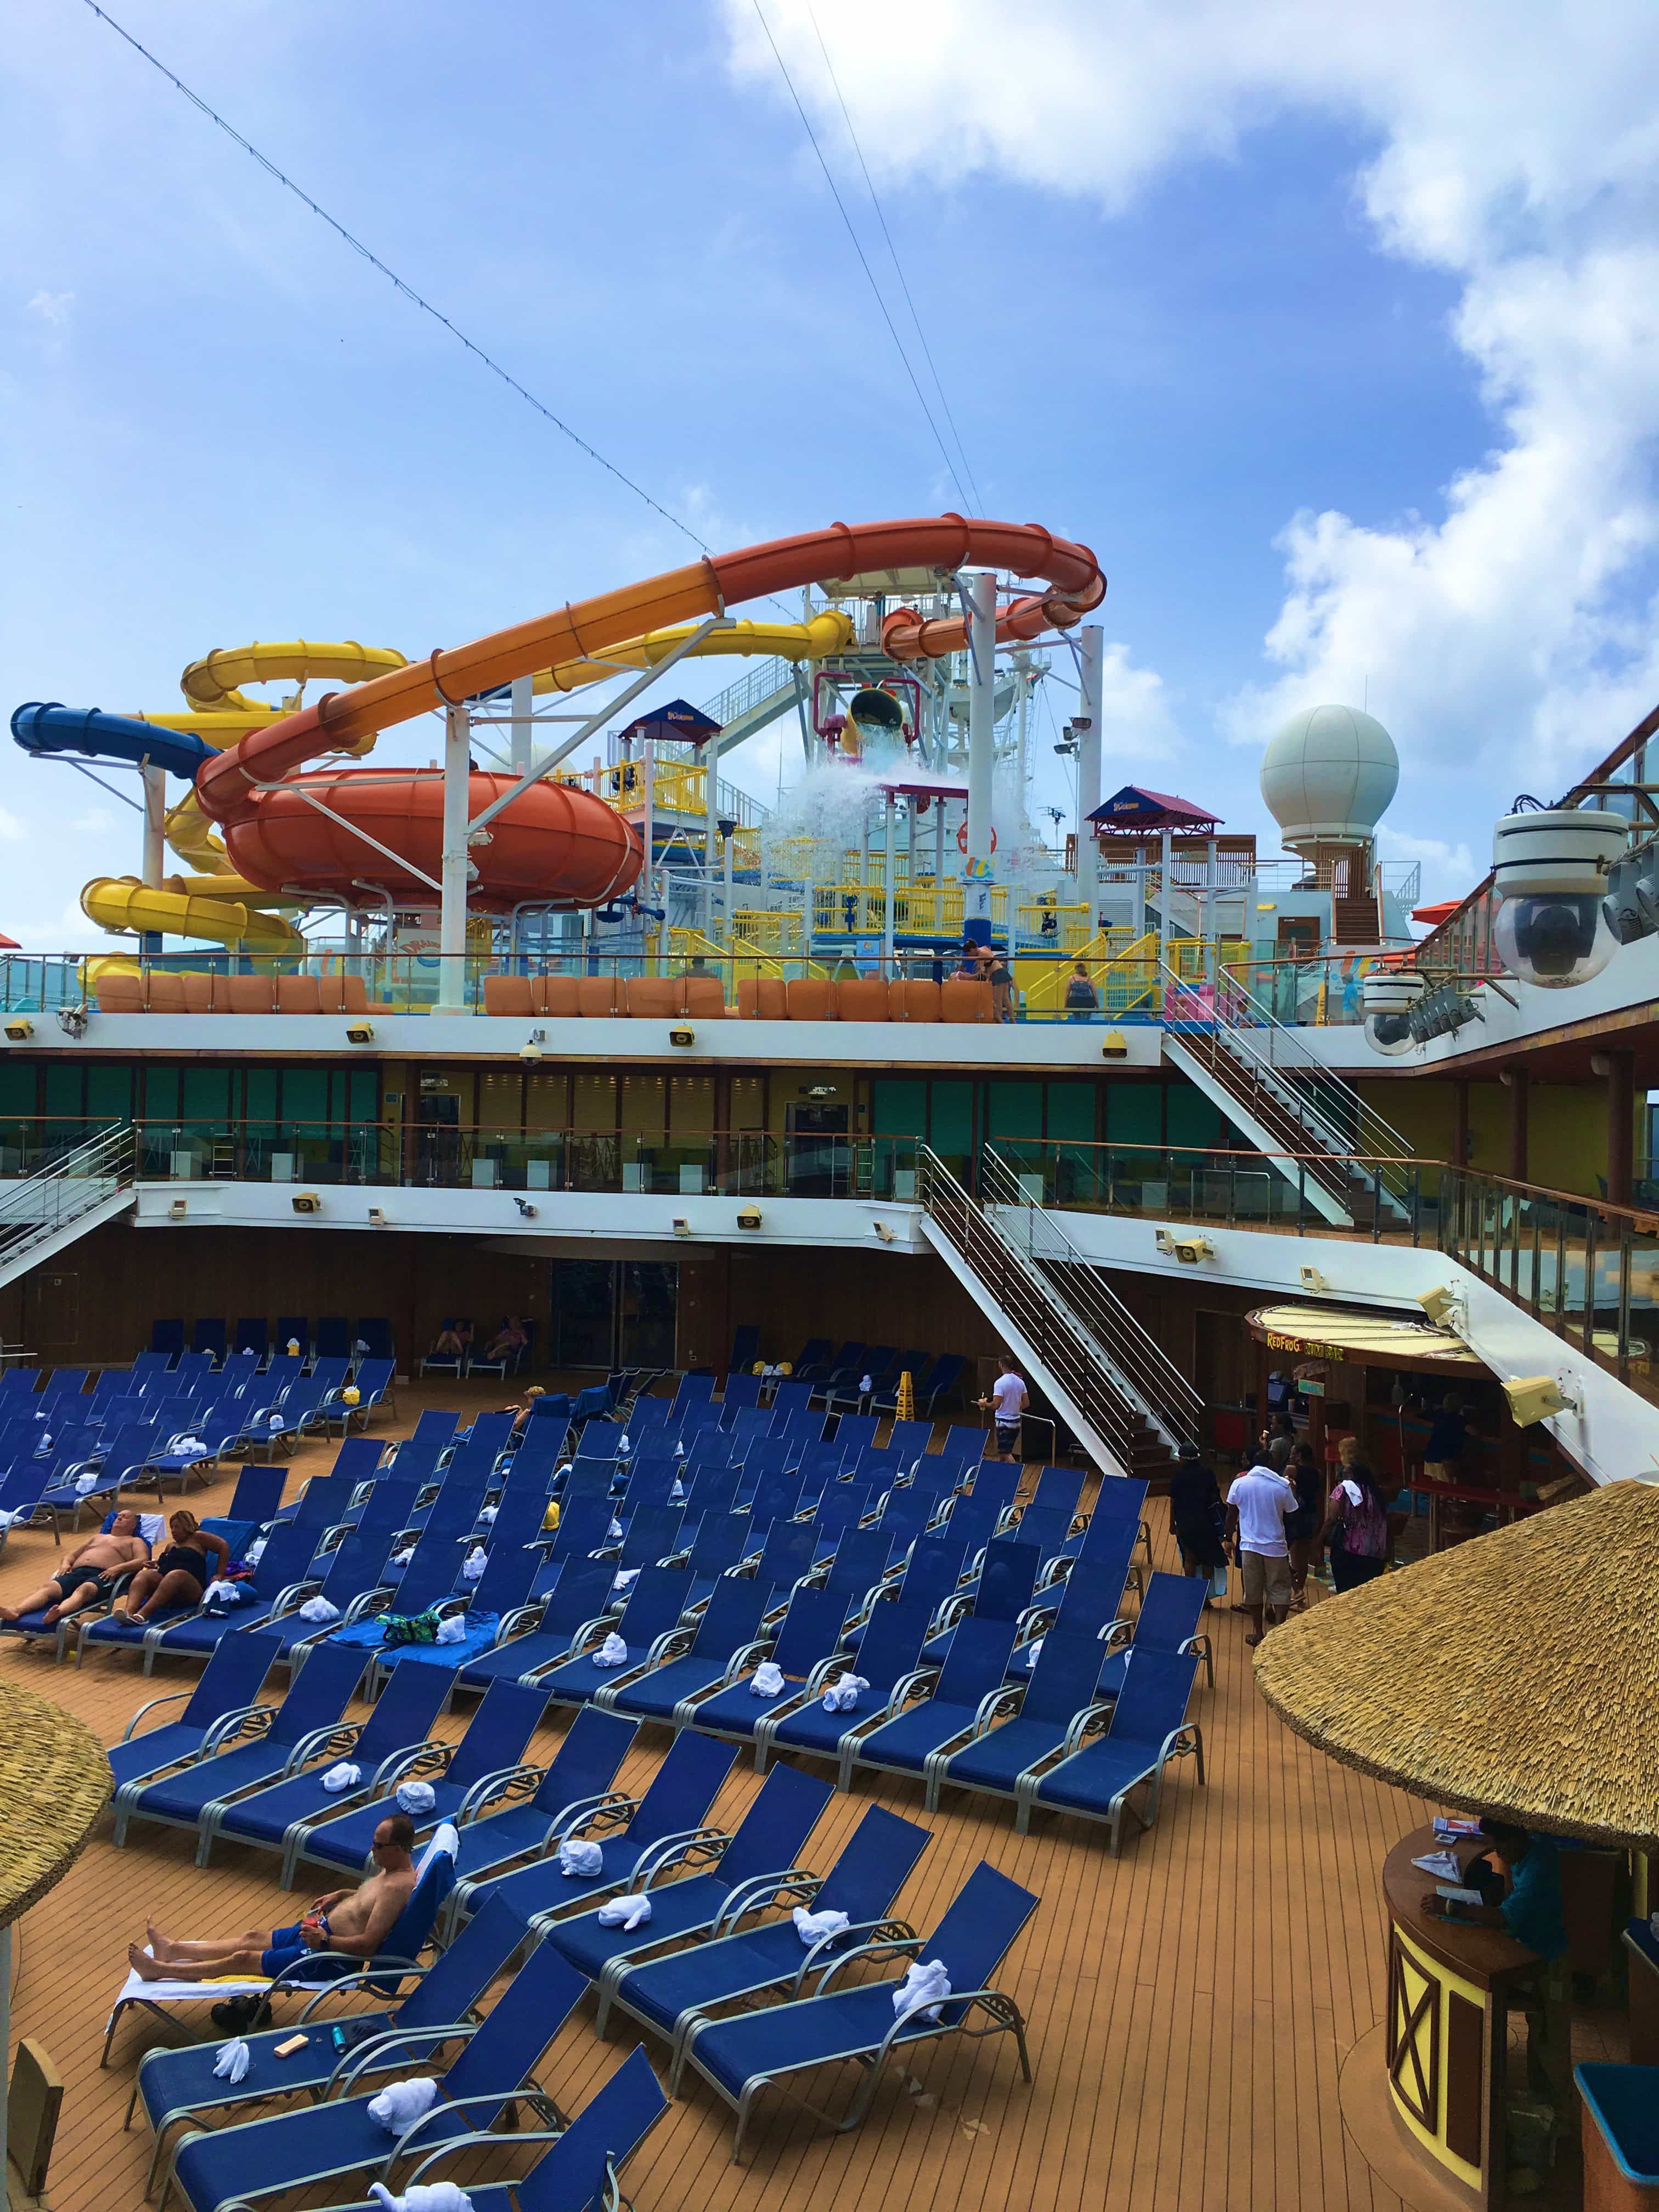 9 Reasons Cruising the Carnival Magic Good for Adults - Fun not just for kids - love the waterslide!